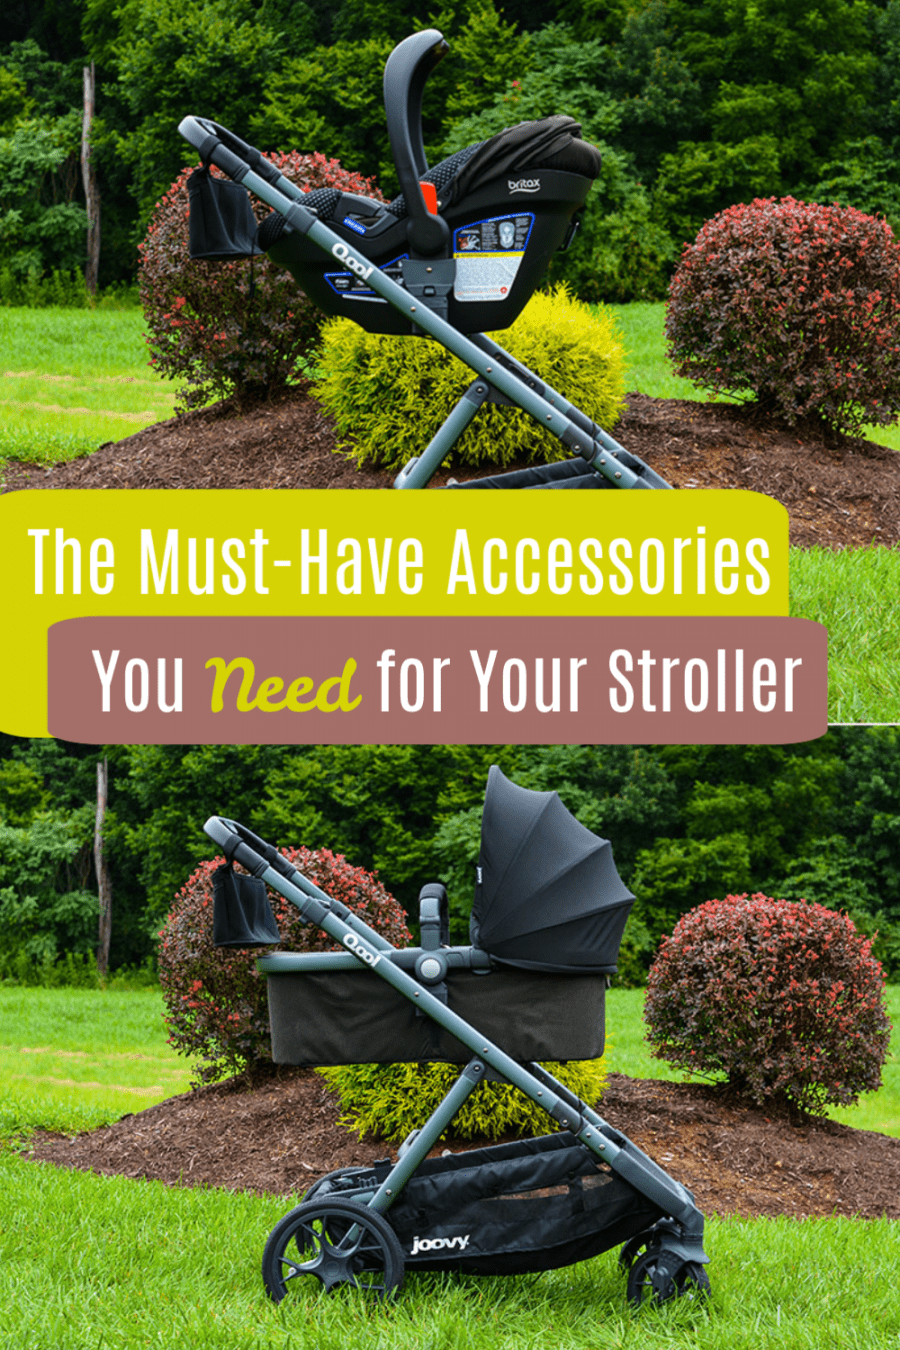 The Must-Have Accessories you NEED for your stroller!